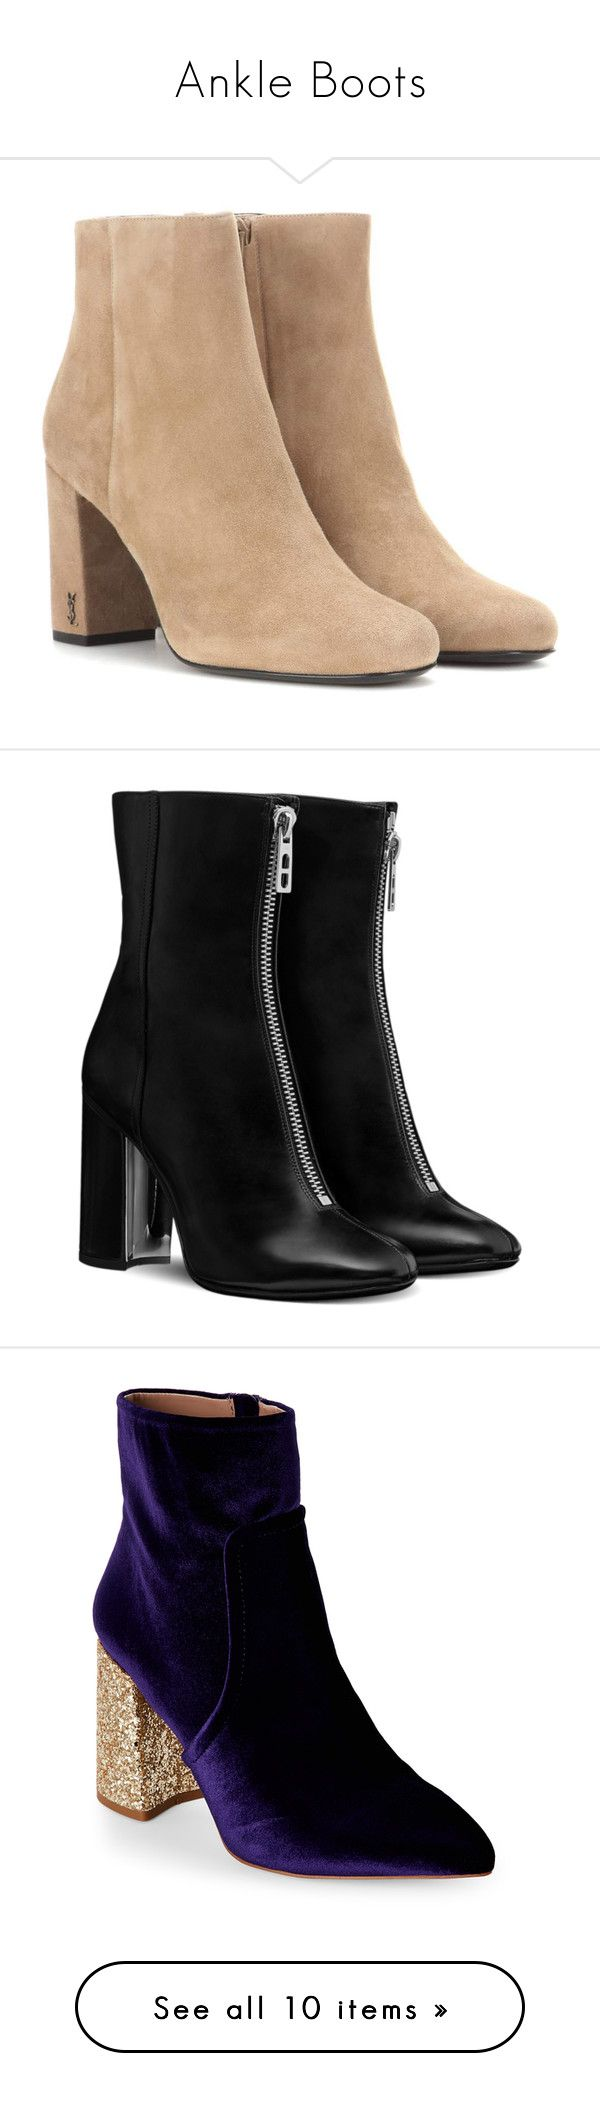 """""""Ankle Boots"""" by galacticgirl ❤ liked on Polyvore featuring shoes, boots, ankle booties, botas, brown, brown suede boots, brown booties, ankle boots, short suede boots and short boots"""